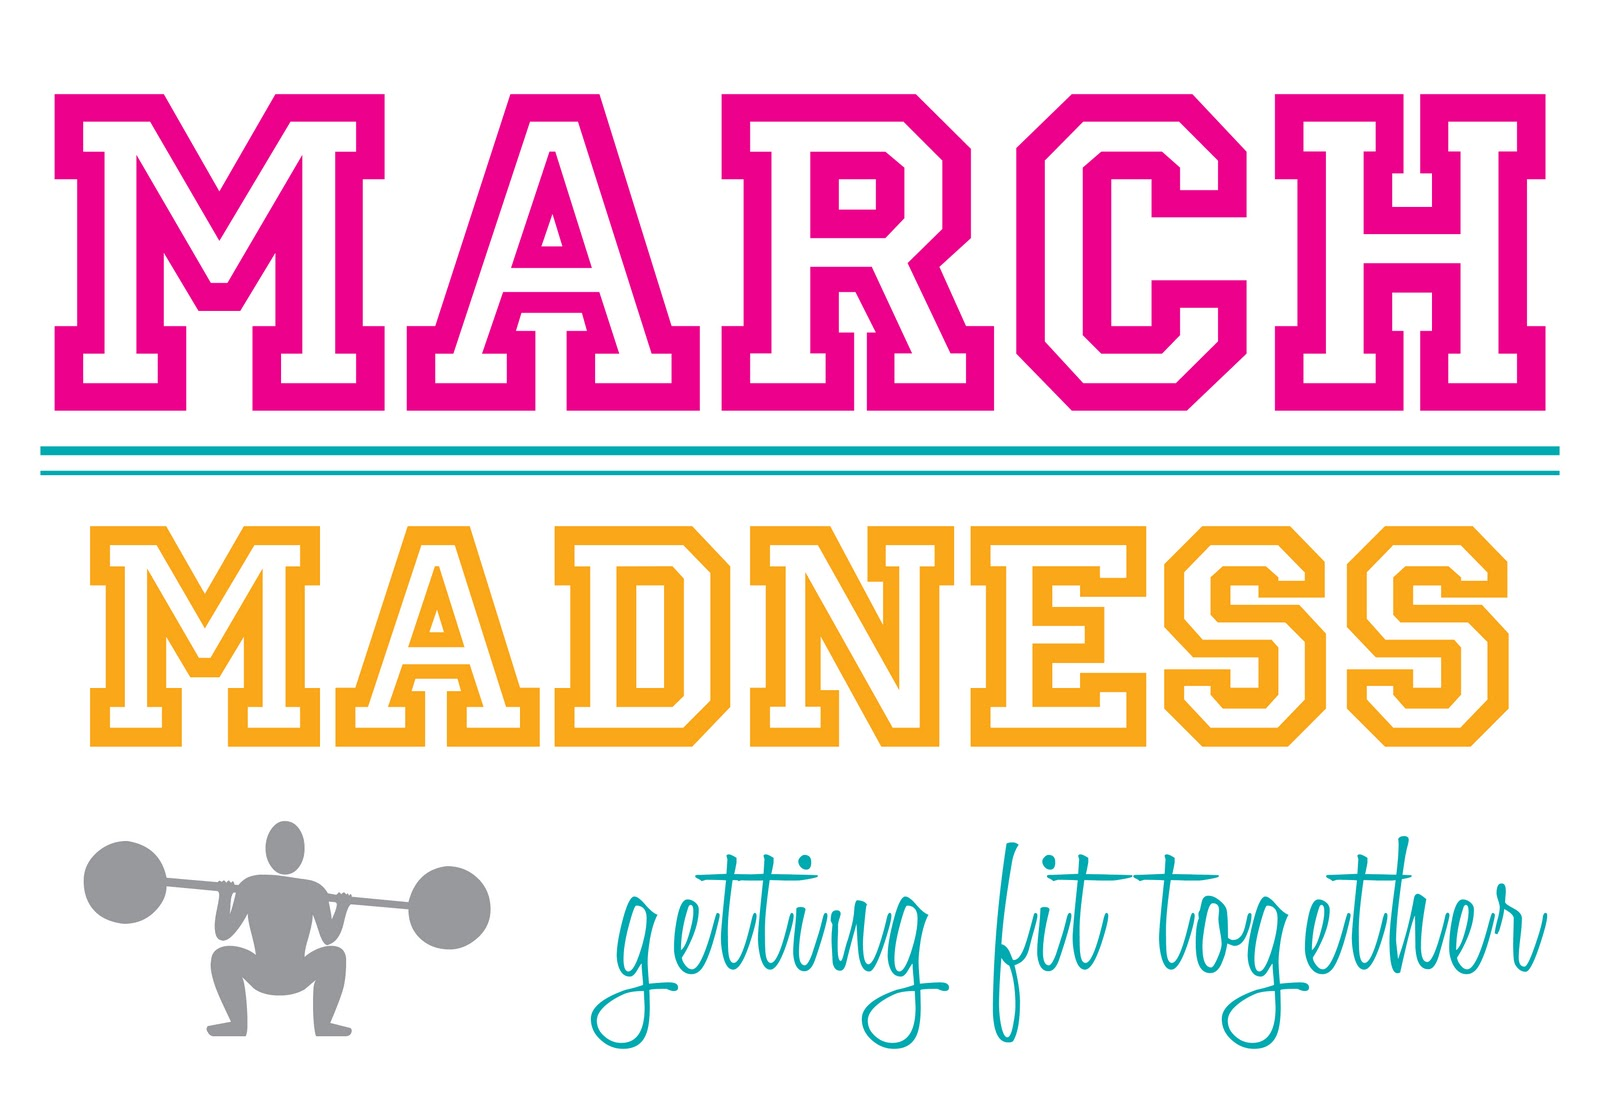 Fit Together Clipart March madness getting fit together - clipart kid